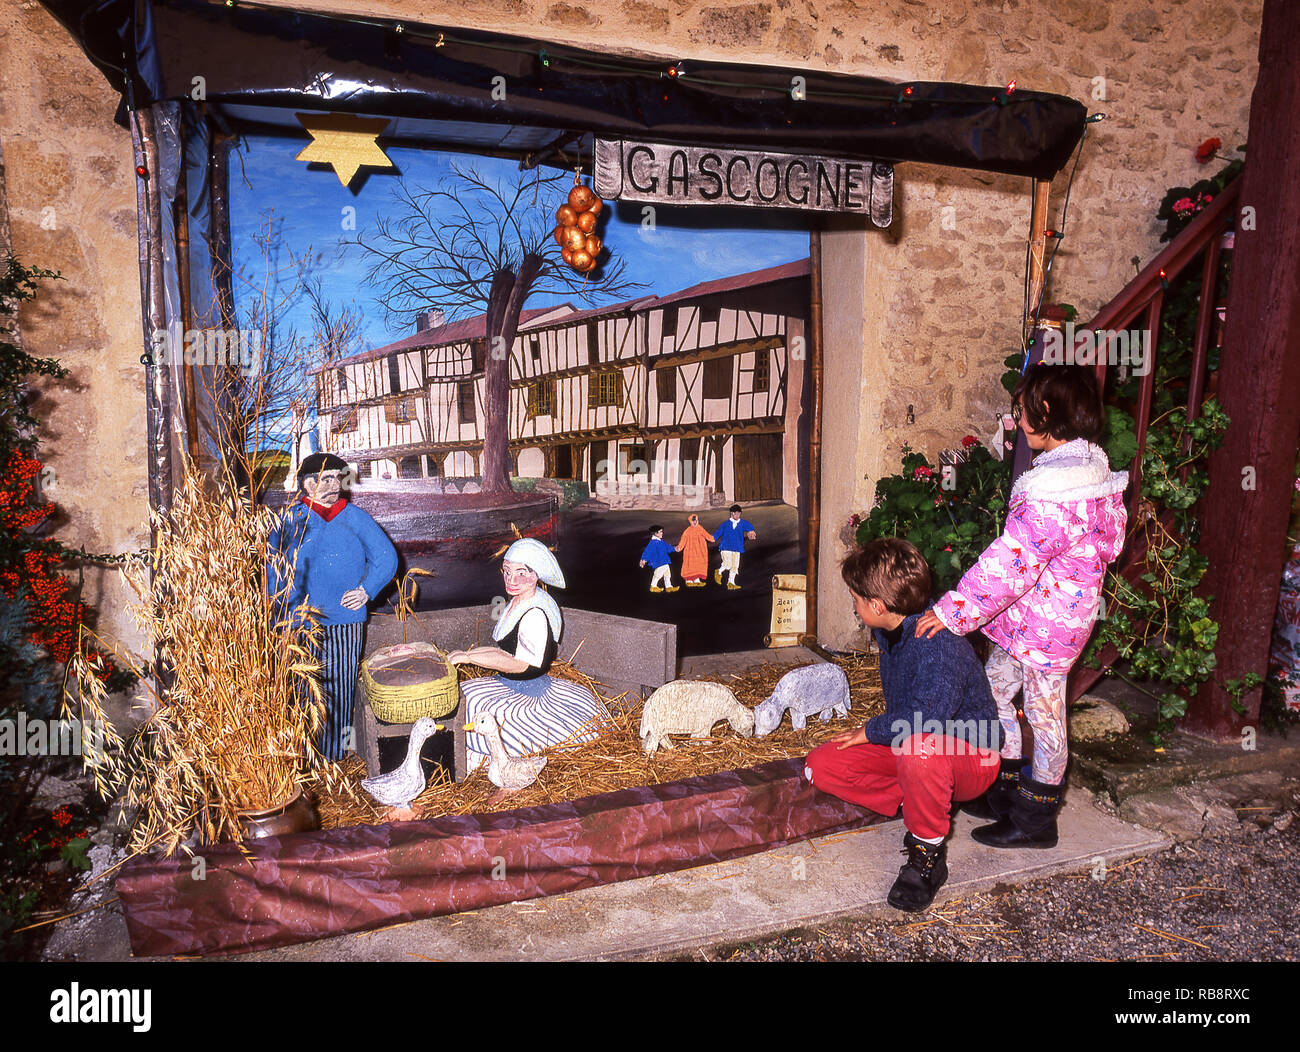 Children looking at a Christmas tableau they helped to build in their village main square. - Stock Image